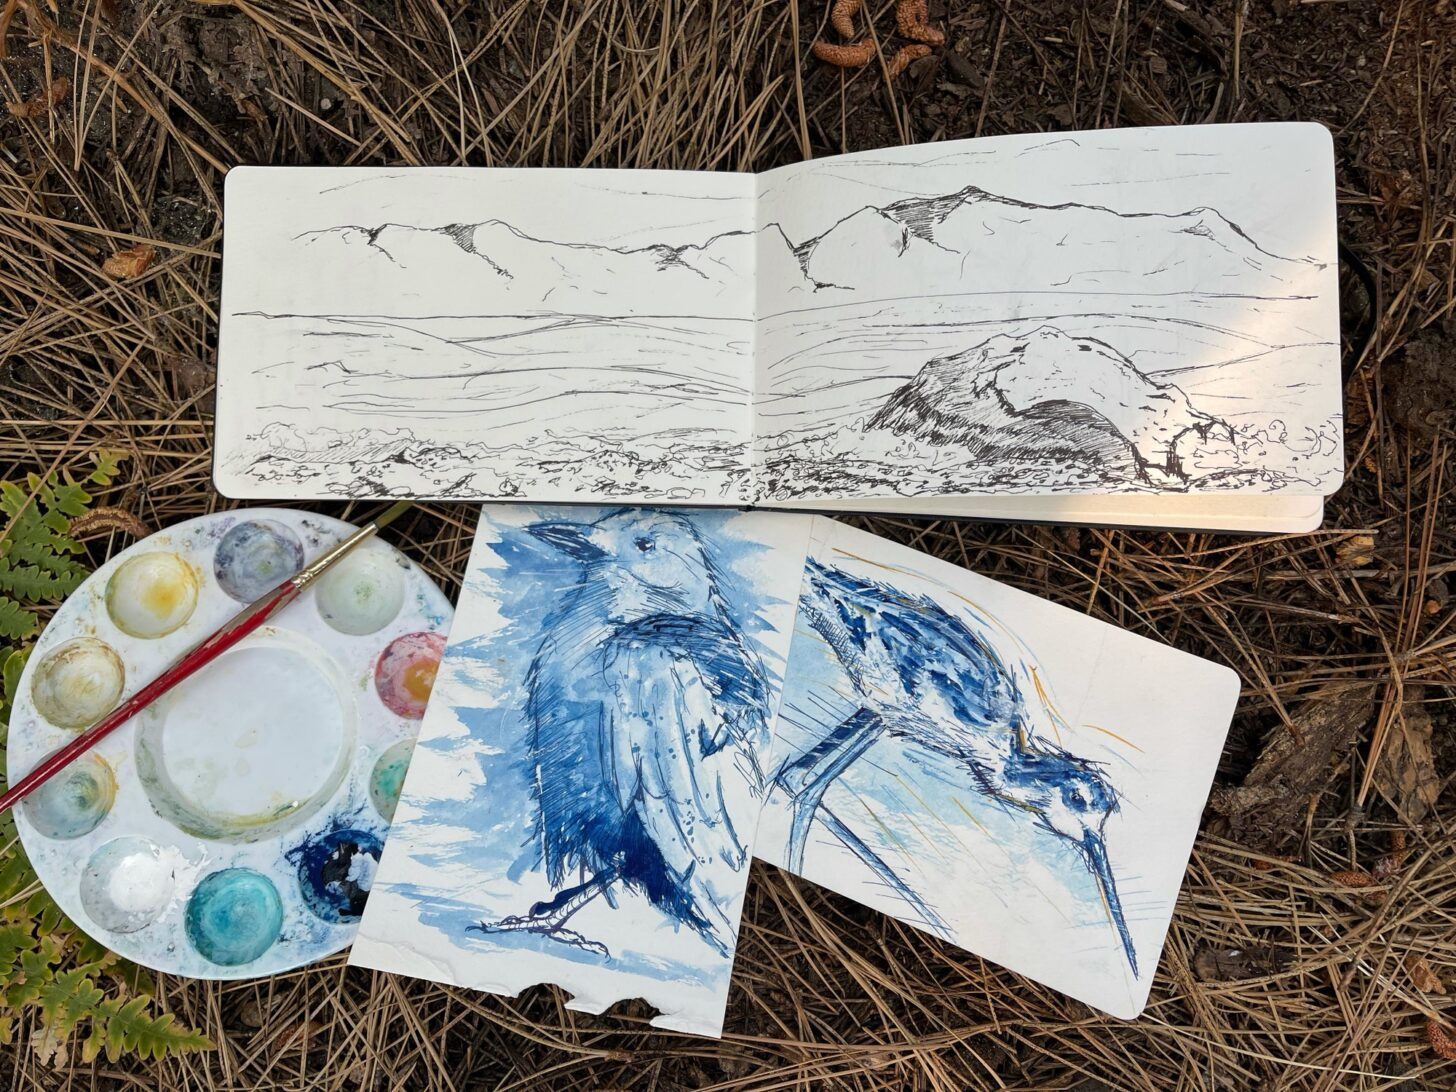 a sketchbook, two paintings of birds, a plastic paint tray, and a small brush resting in a cushion of pine needles.